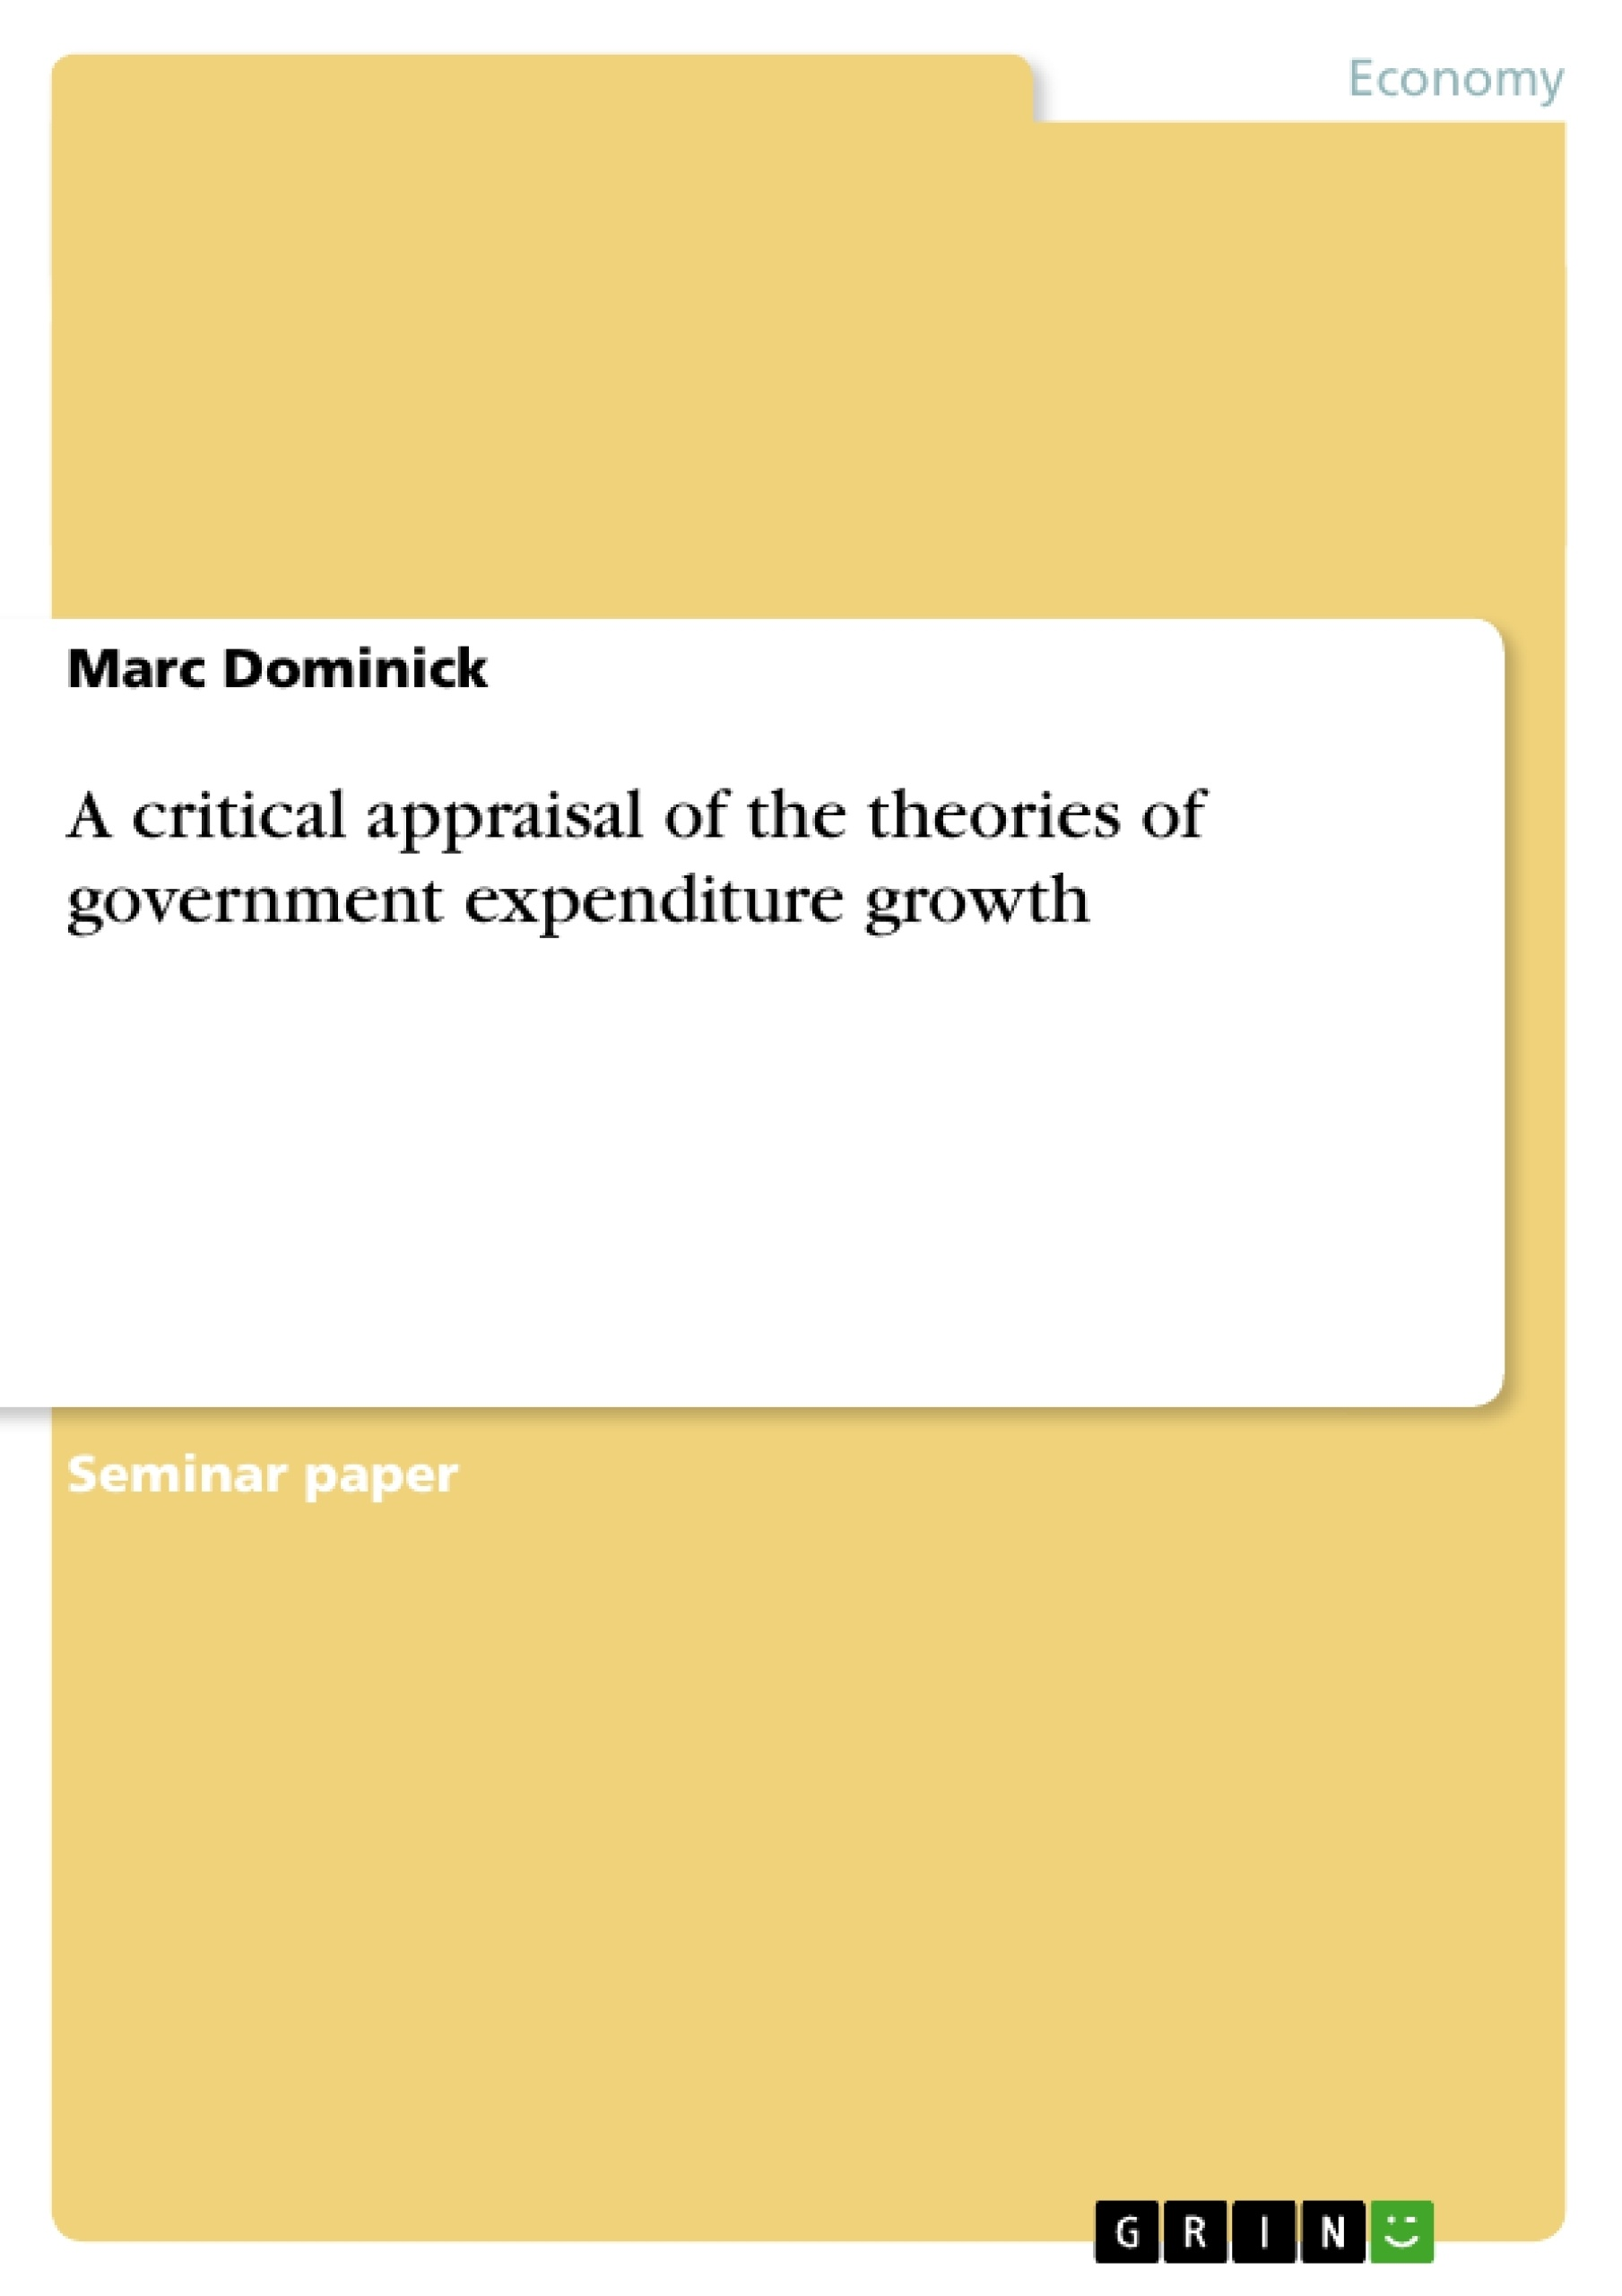 Title: A critical appraisal of the theories of government expenditure growth